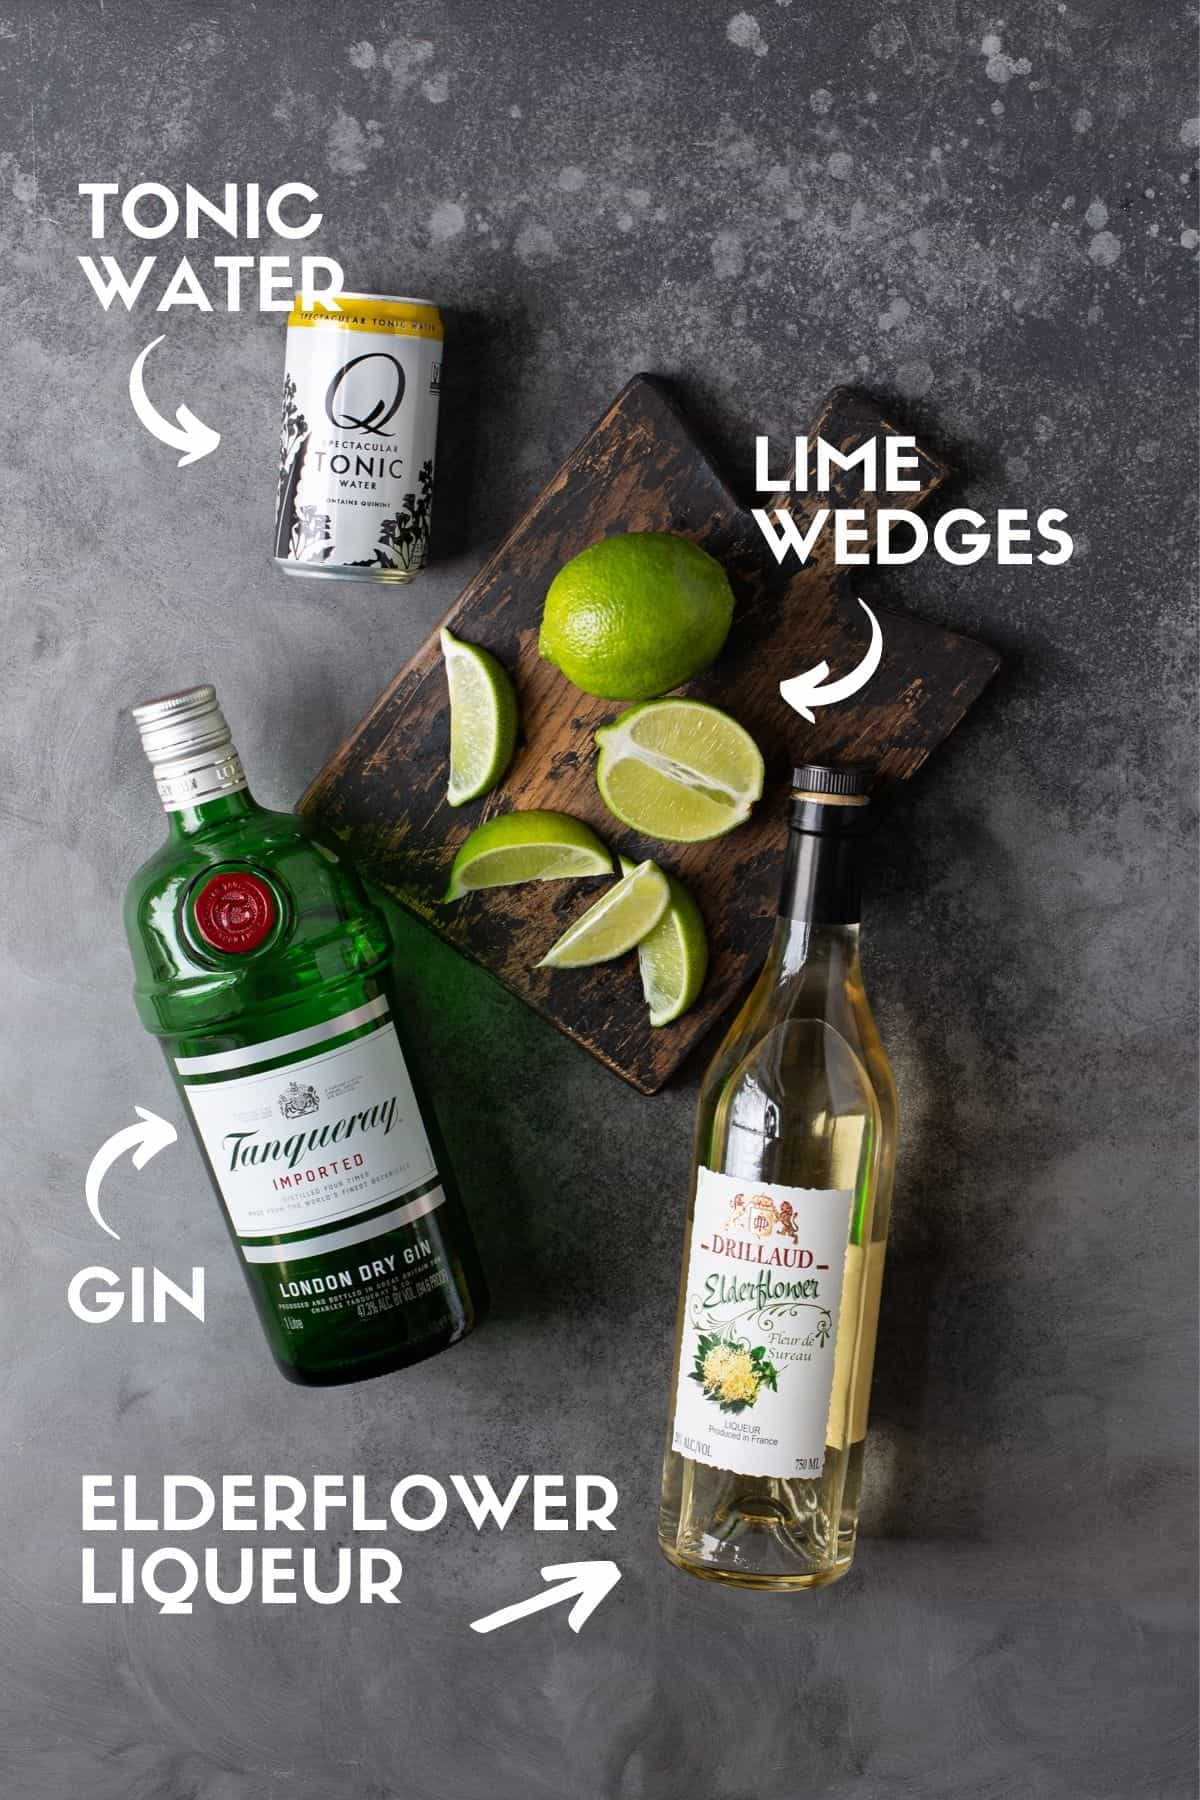 Ingredients for elderflower gin and tonic including gin, tonic water and elderflower liqueur.